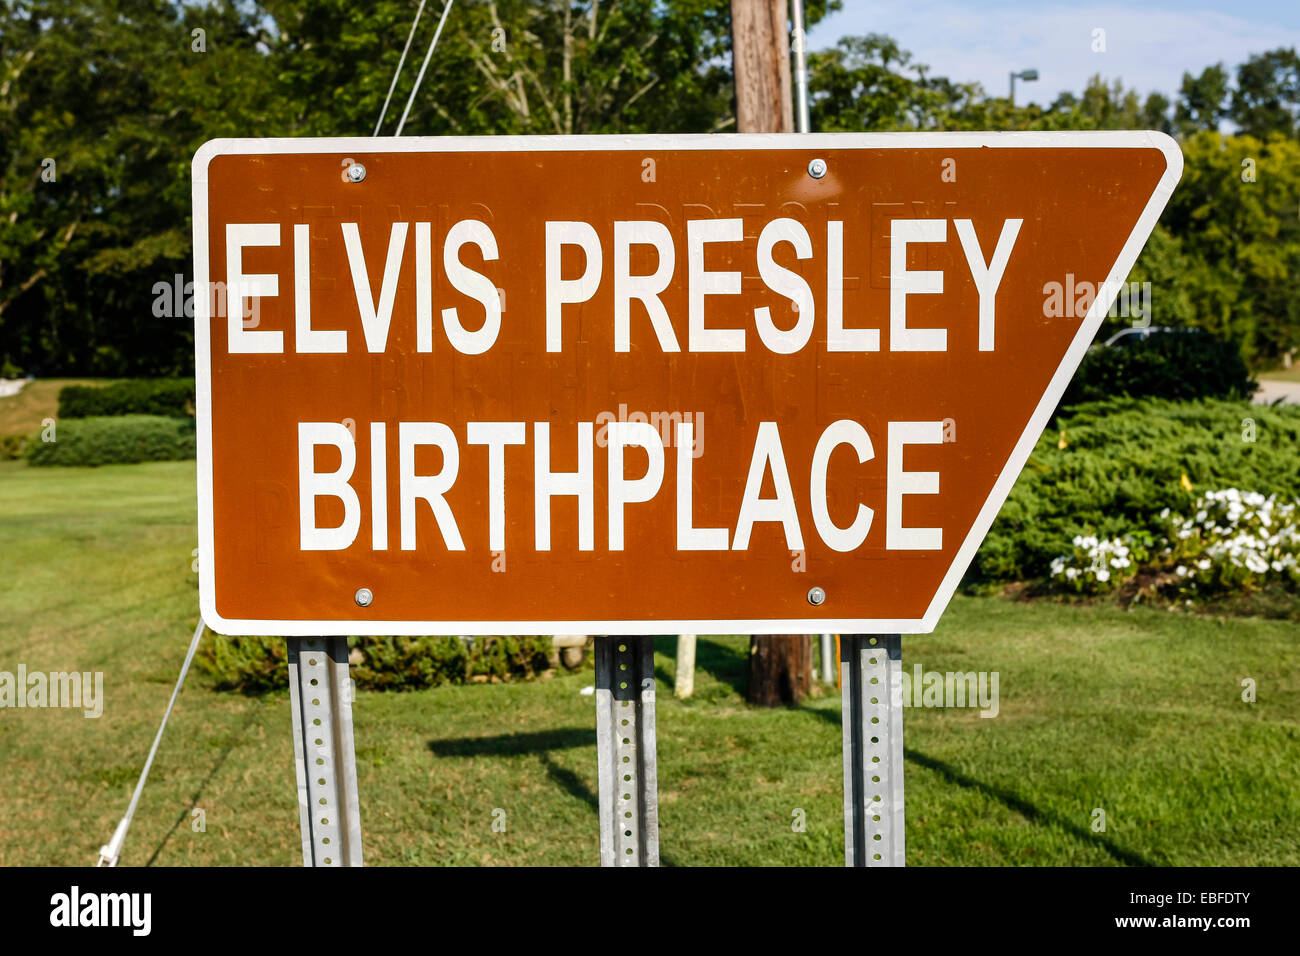 Elvis Presley Birthplace Brown and White historical direction sign in Tupelo Mississippi - Stock Image